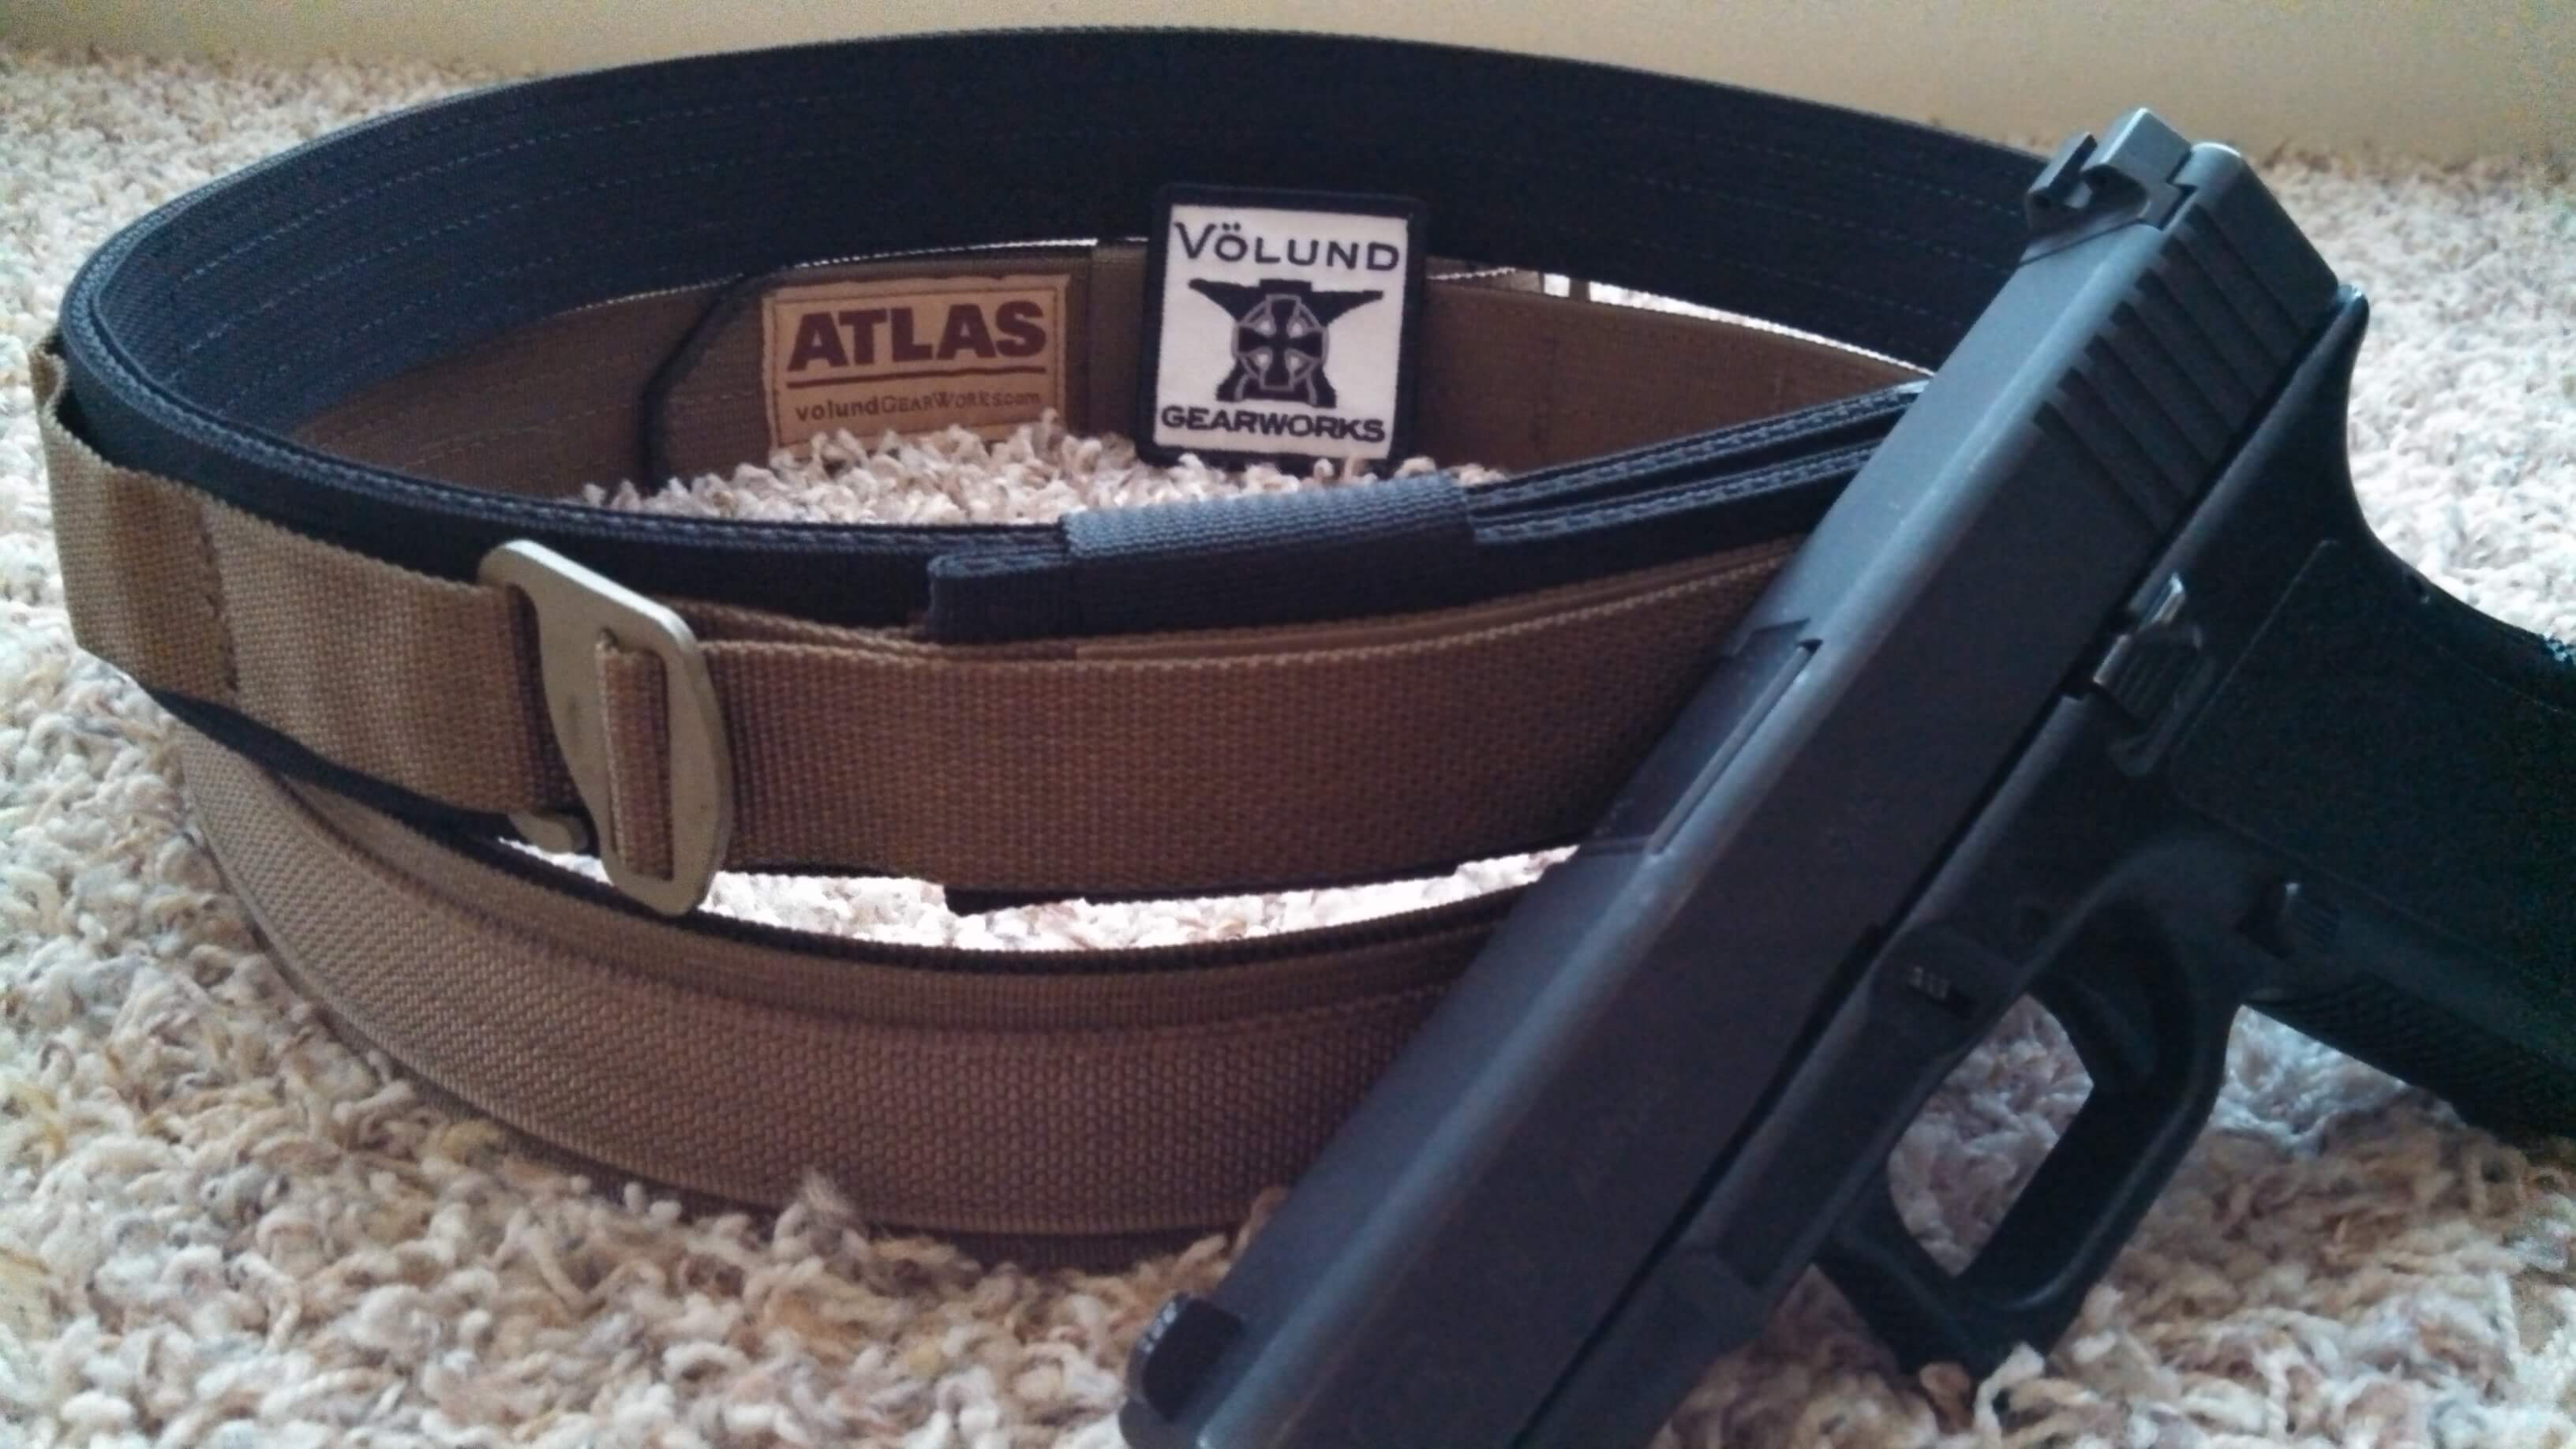 Volund Gearworks, ATLAS Belts